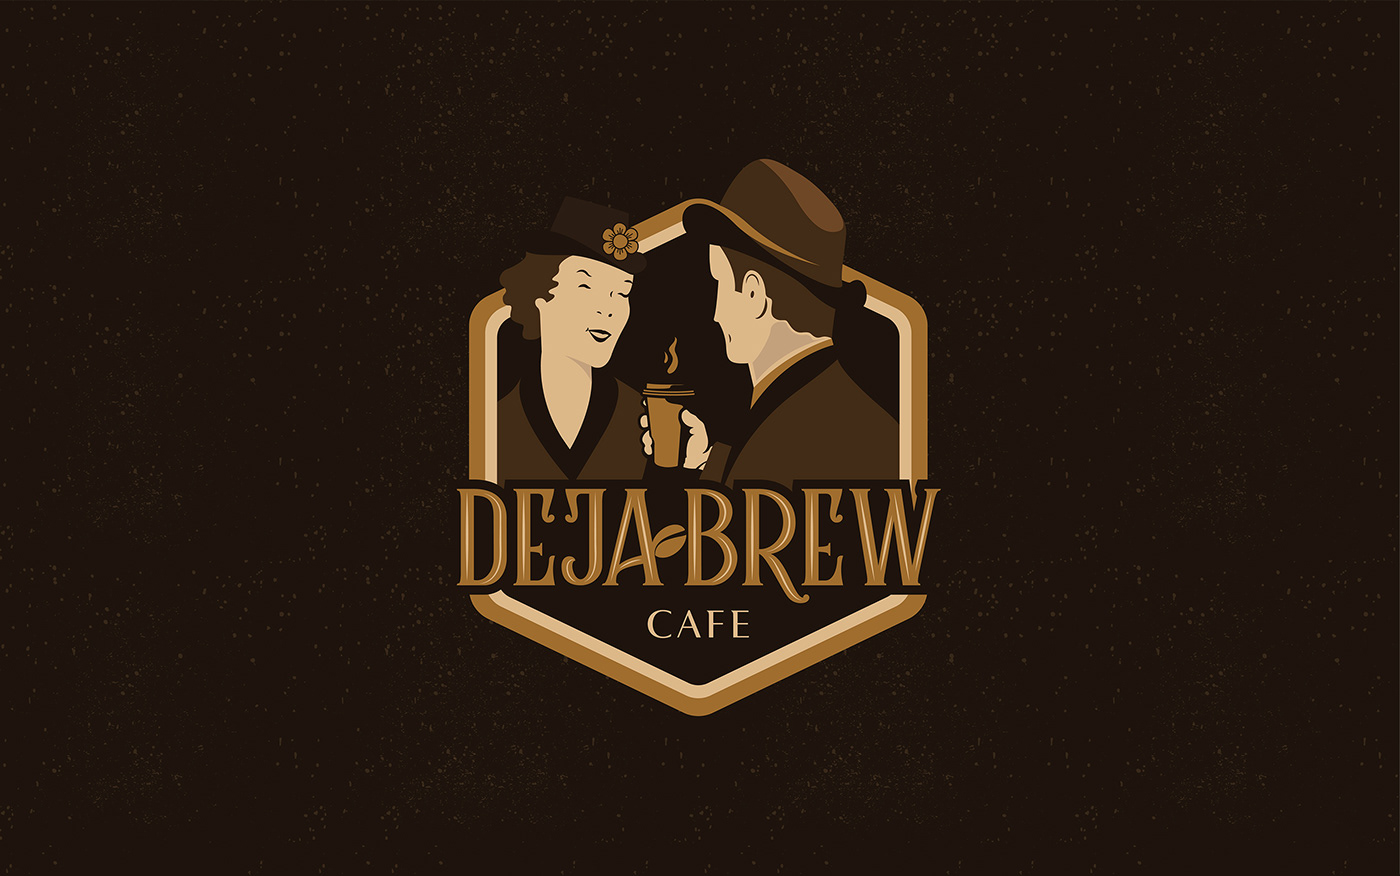 cafe,branding ,dubai,luxury,Classic,Retro,vintage,premium,Coffee,restaurant